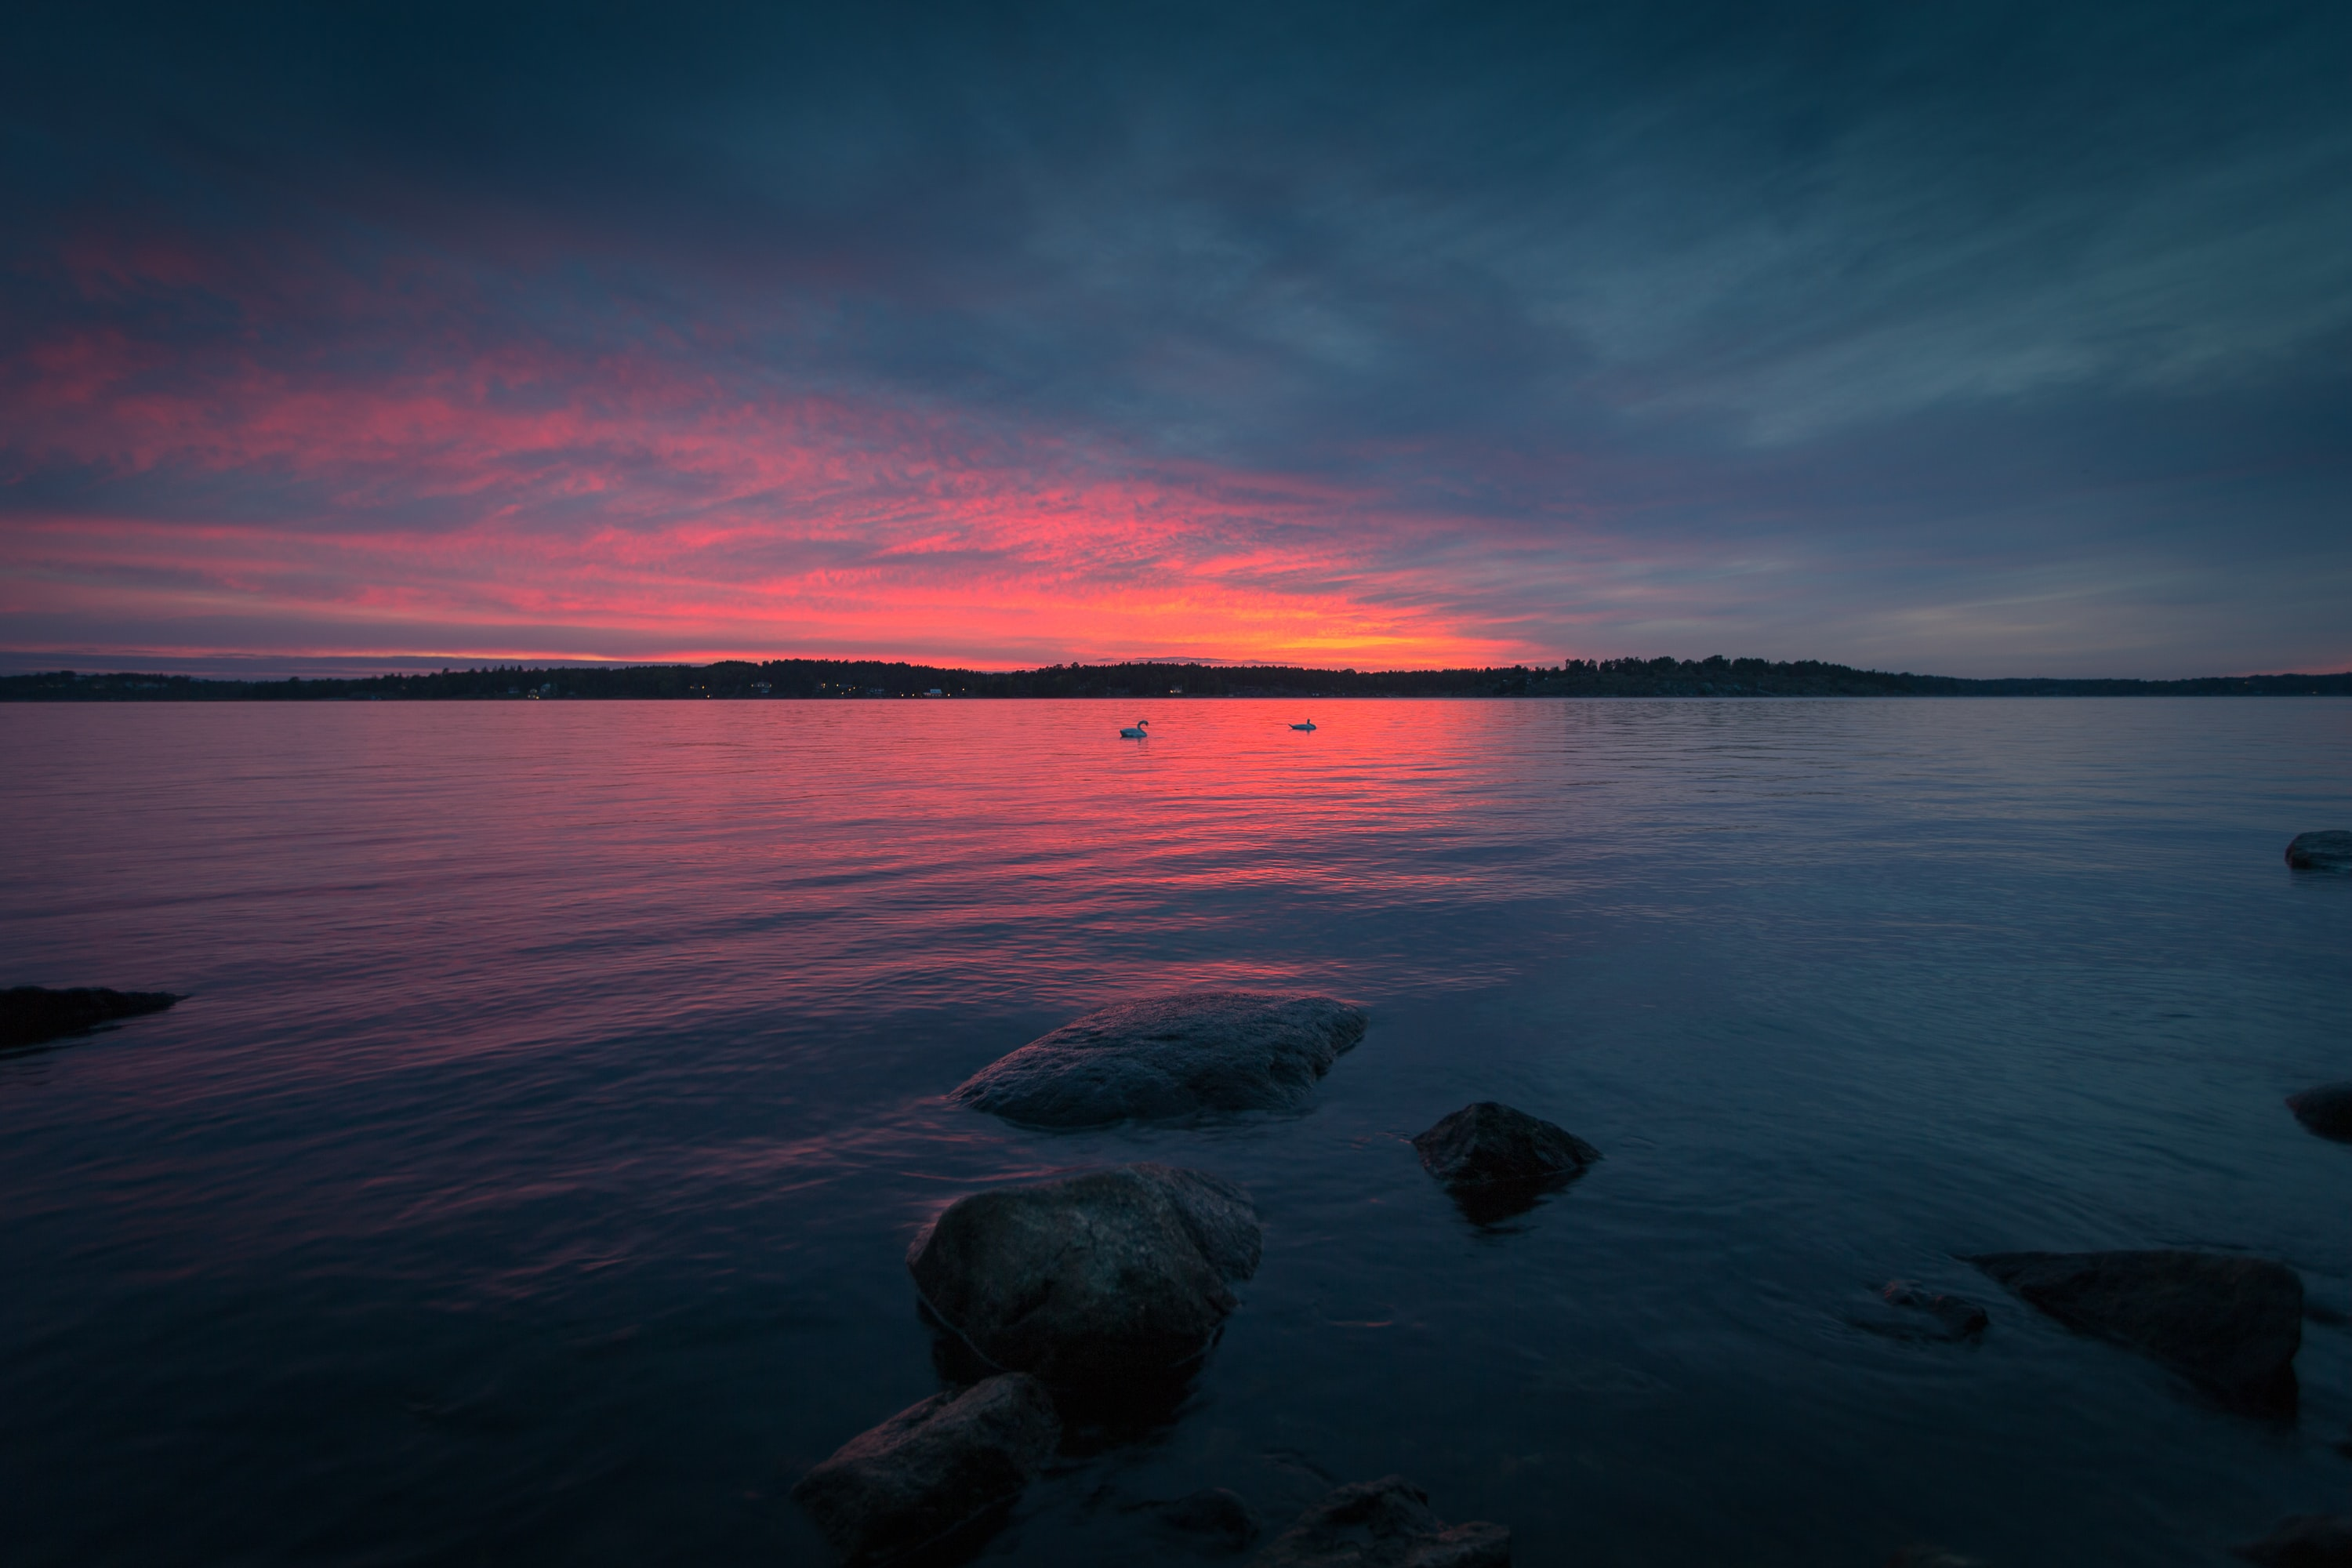 Landscape sunset with pink horizon and dark grey clouds over water with rocks in Stockholm.